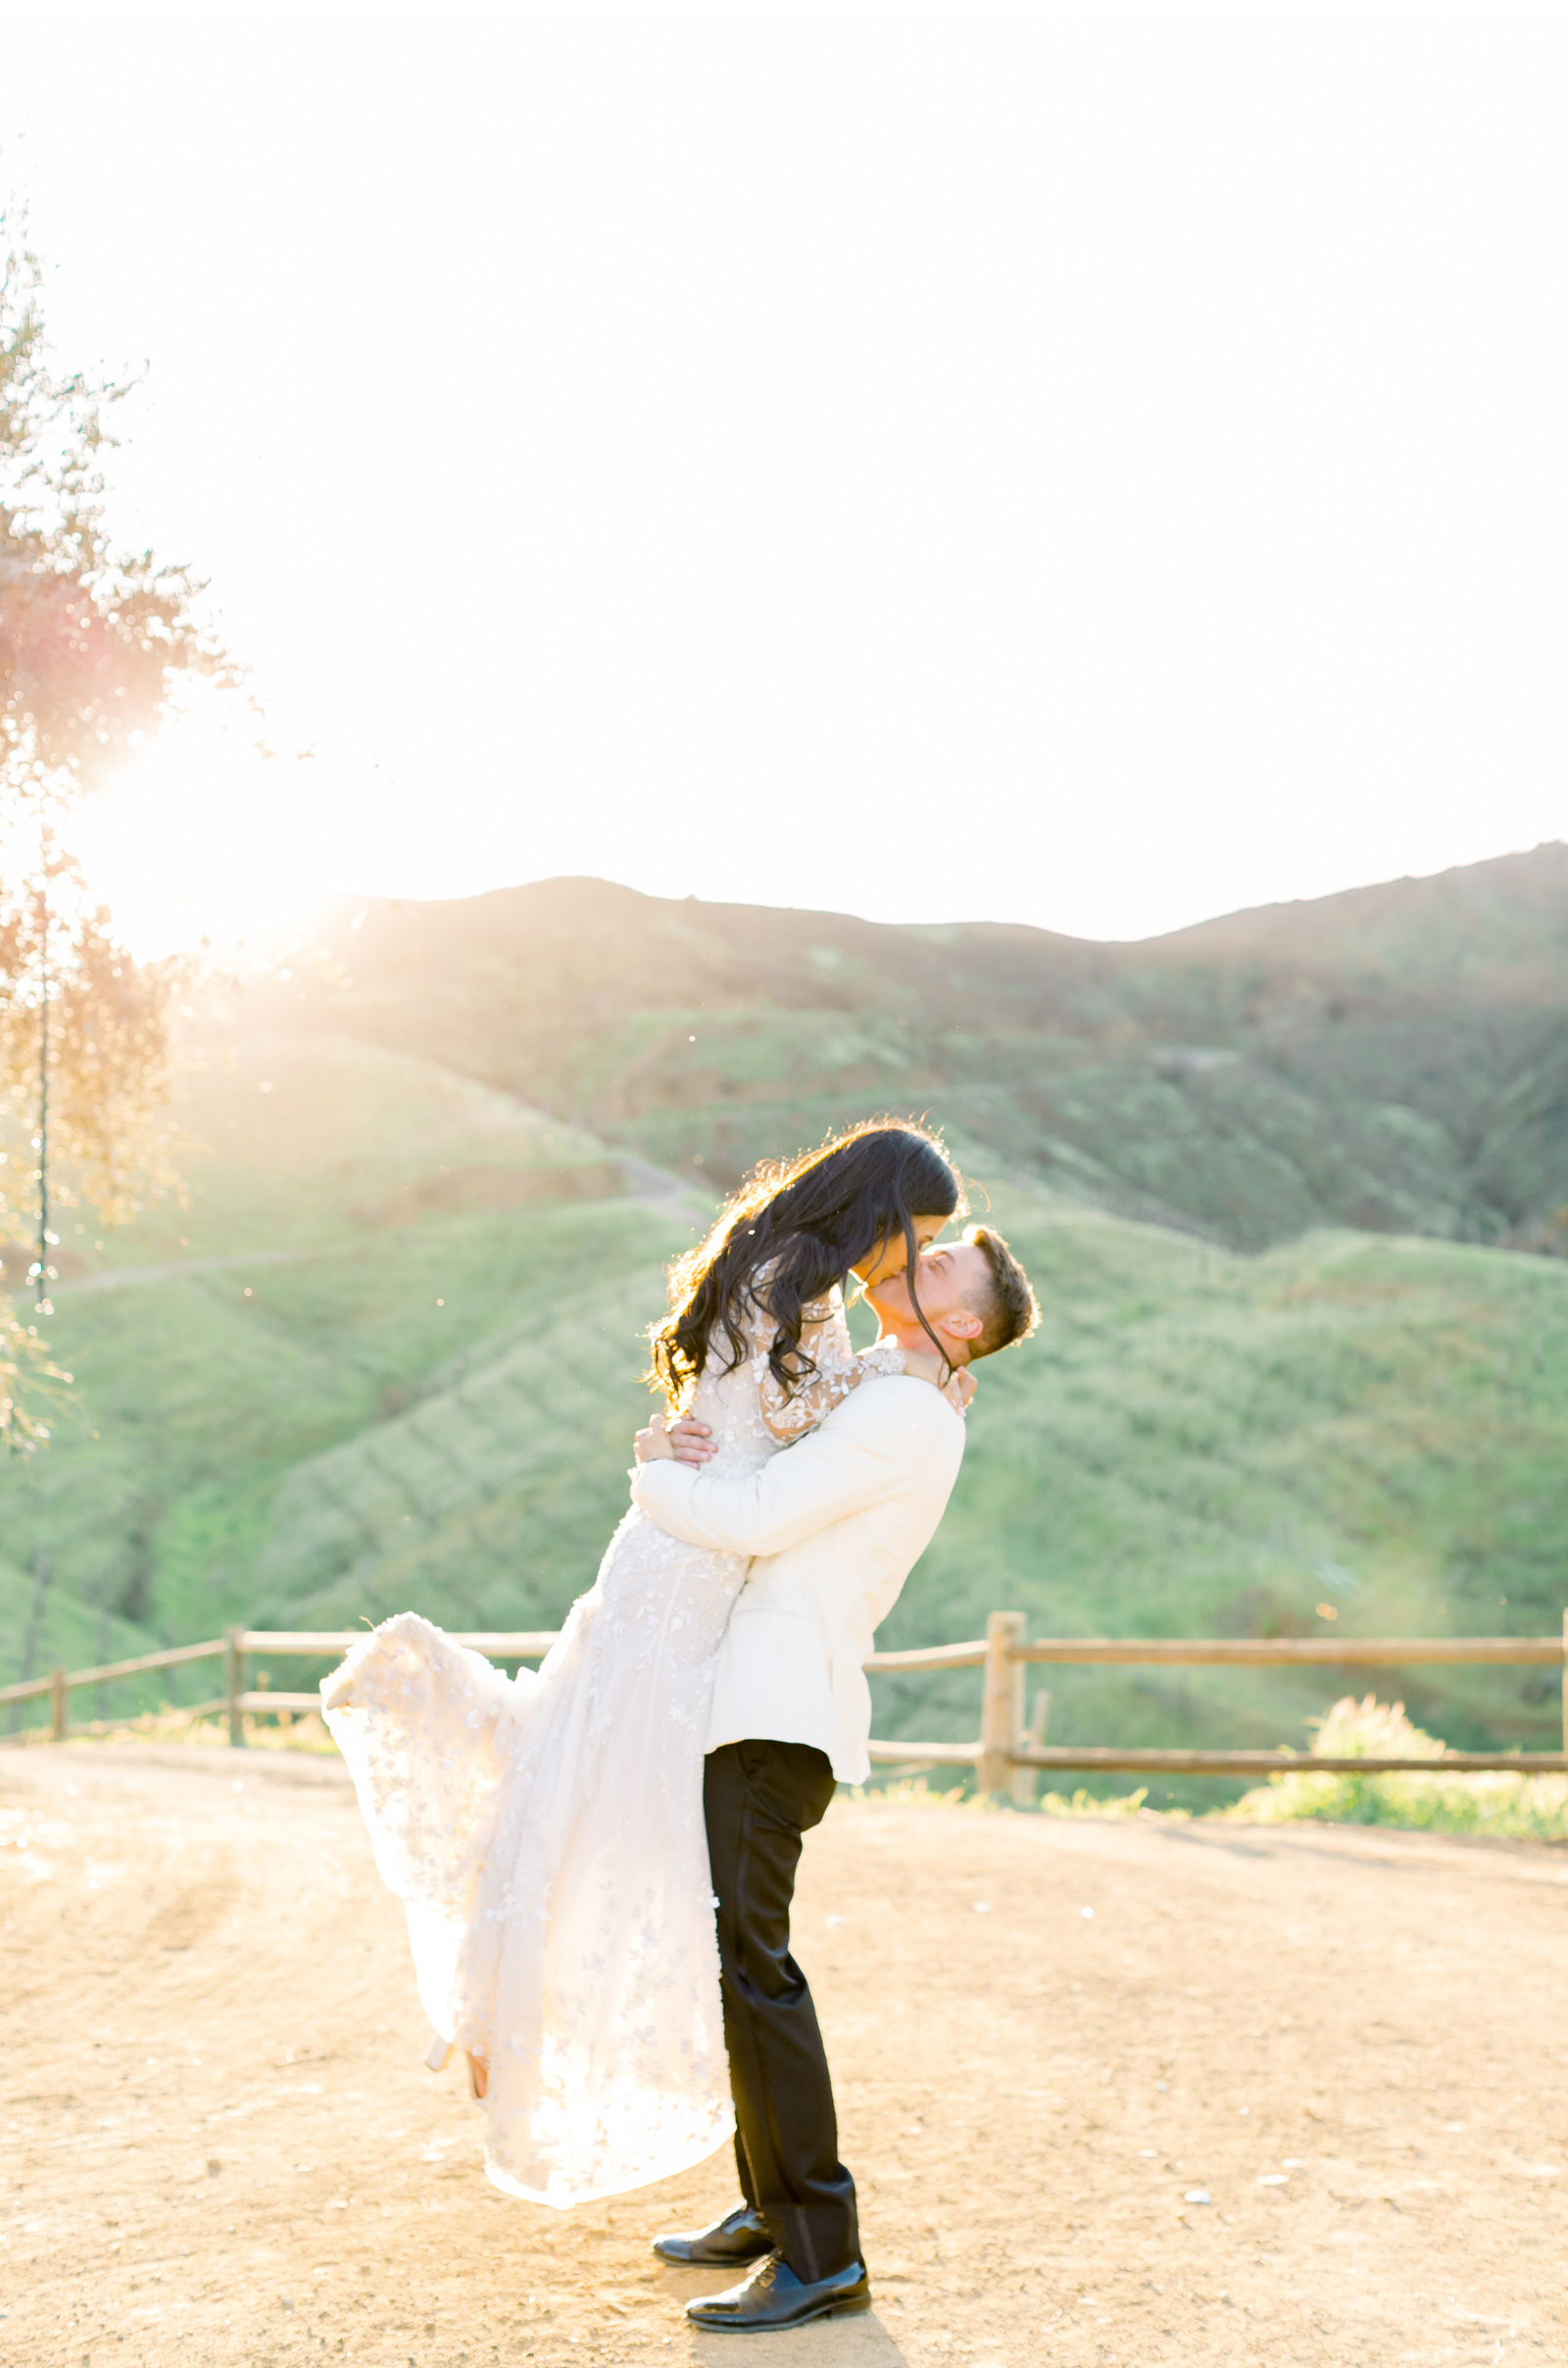 Style-Me-Pretty-Malibu-Wedding-Photogrpaher-Southern-California-Wedding-Photographer-Natalie-Schutt-Photography-_03.jpg